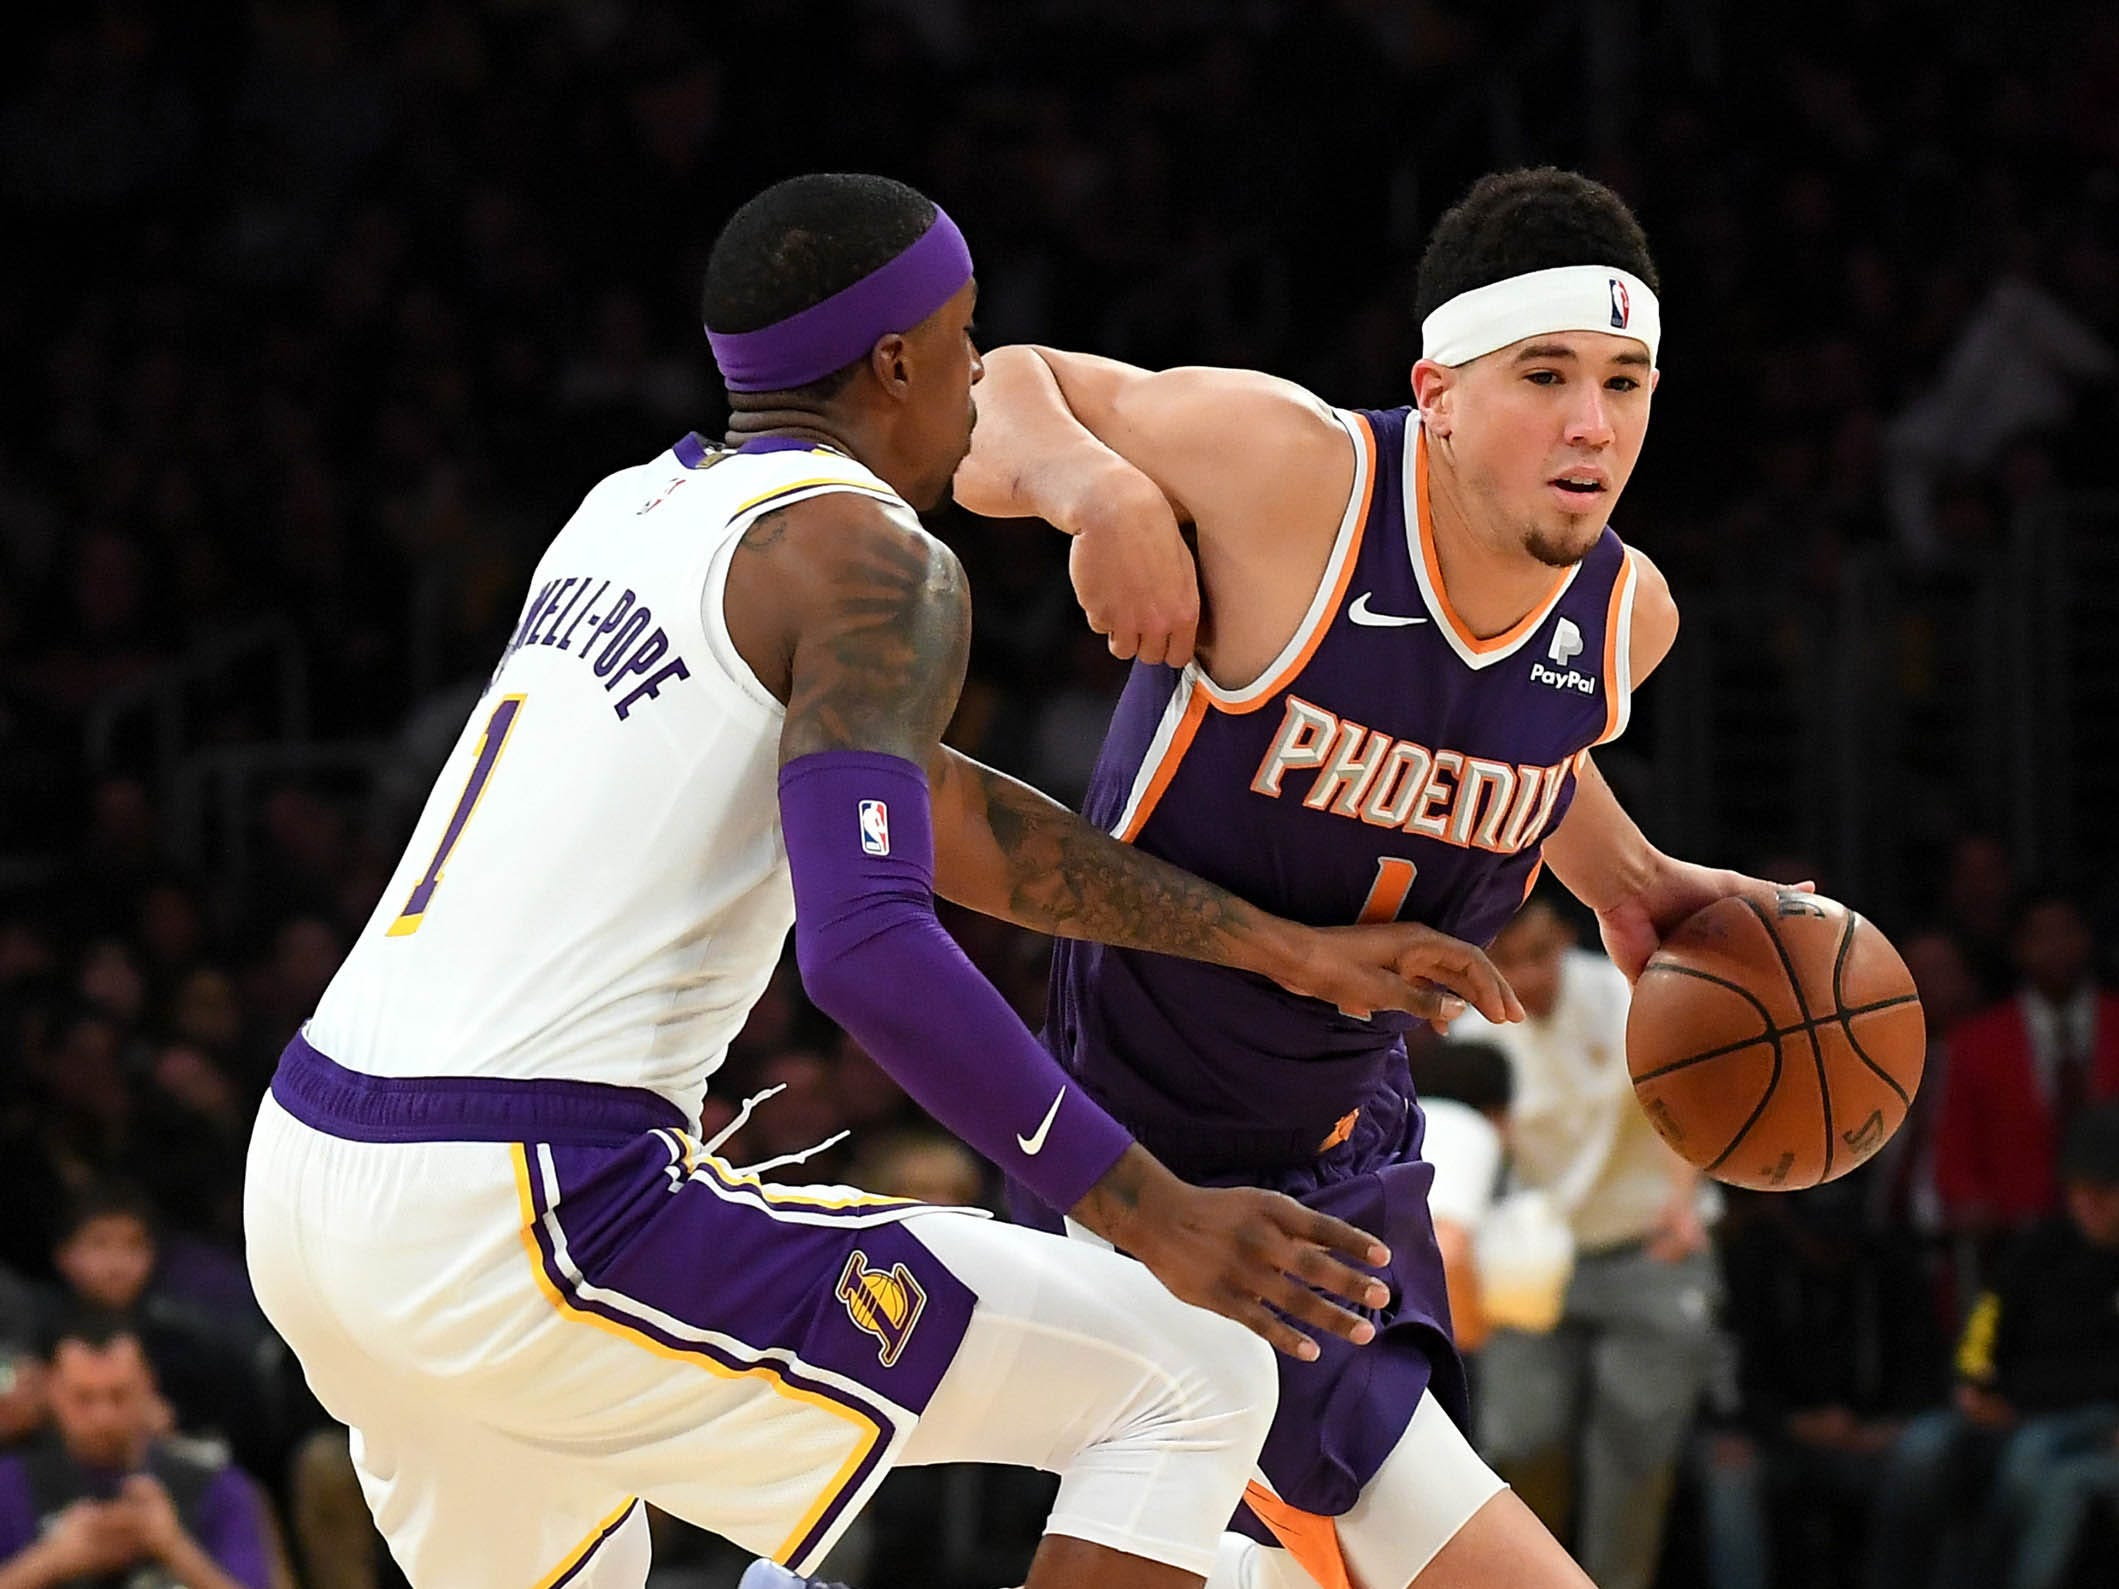 Jan 27, 2019: Los Angeles Lakers guard Kentavious Caldwell-Pope (1) guards Phoenix Suns guard Devin Booker (1) as he drives to the basket in the first half of the game at Staples Center.